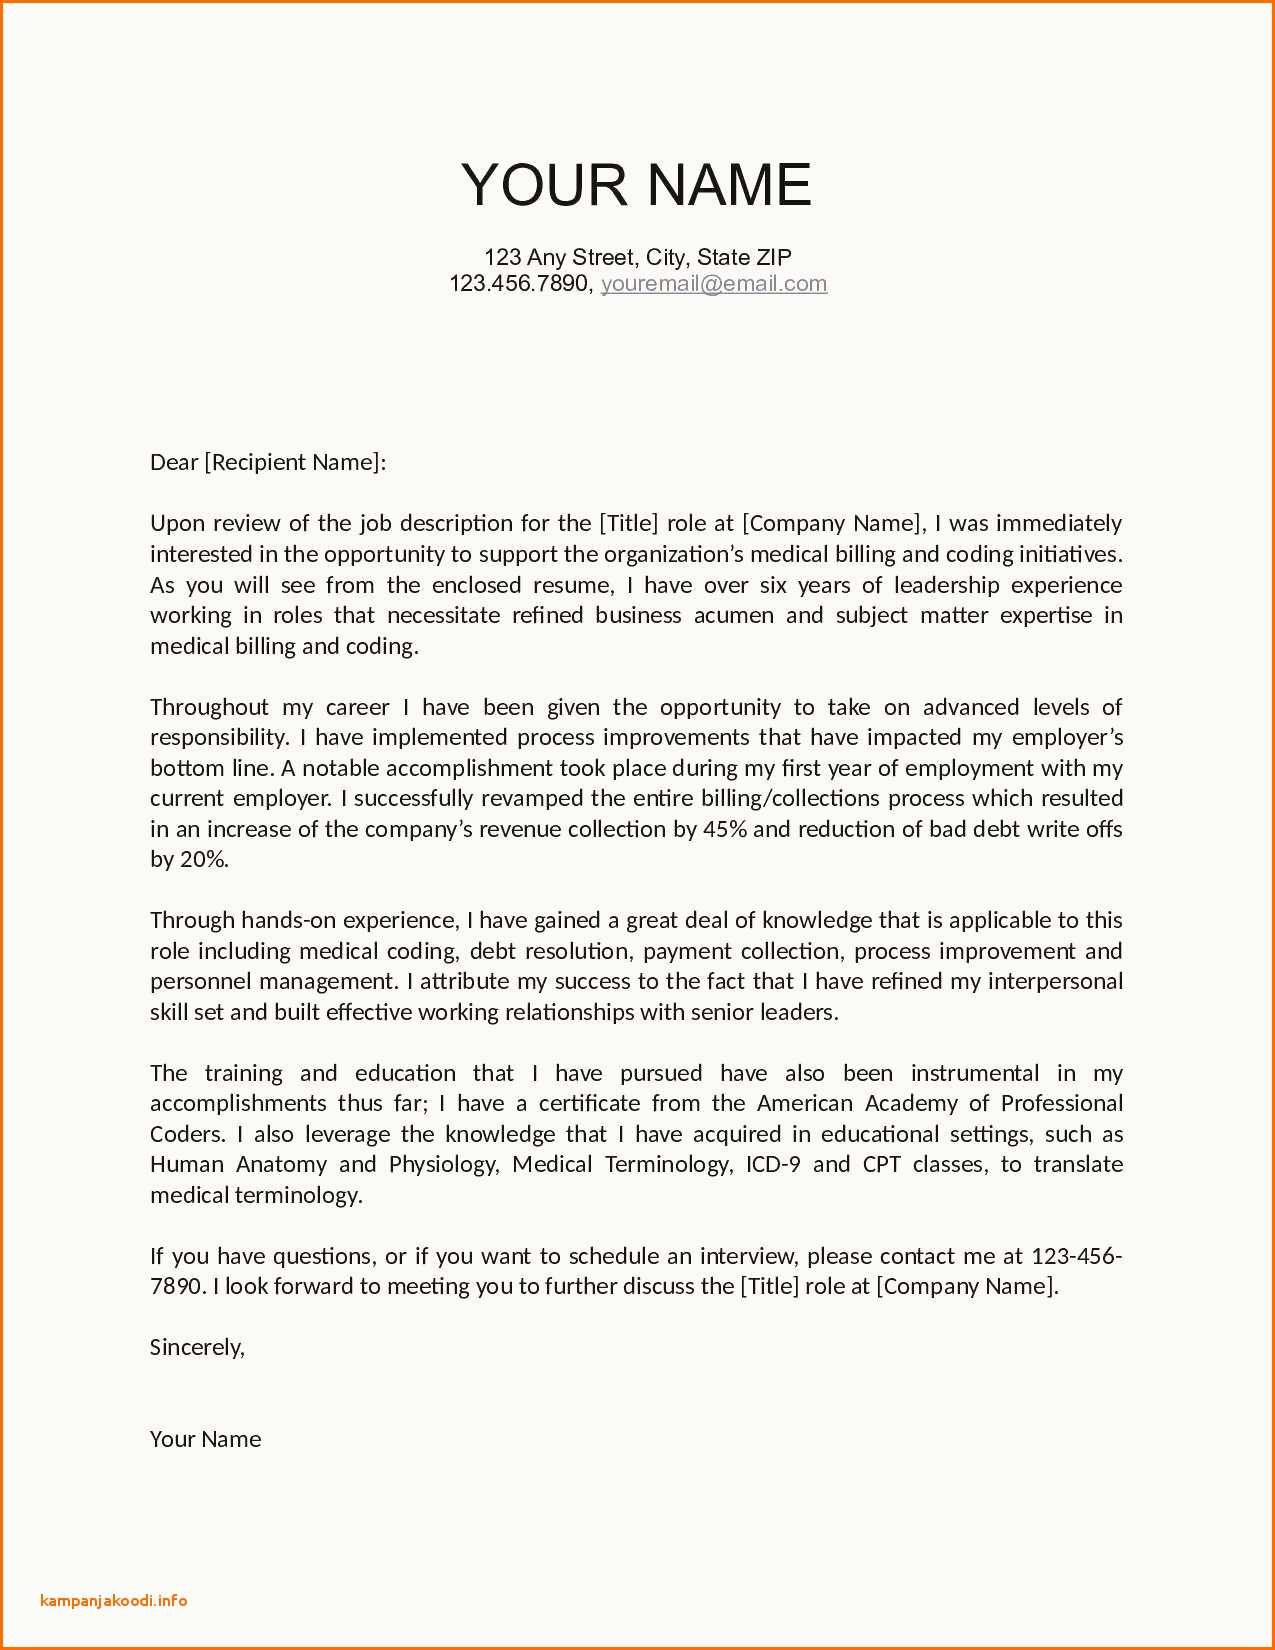 Pay someone to Write My Resume - Letter Writing format O Levels Job Fer Letter Template Us Copy Od